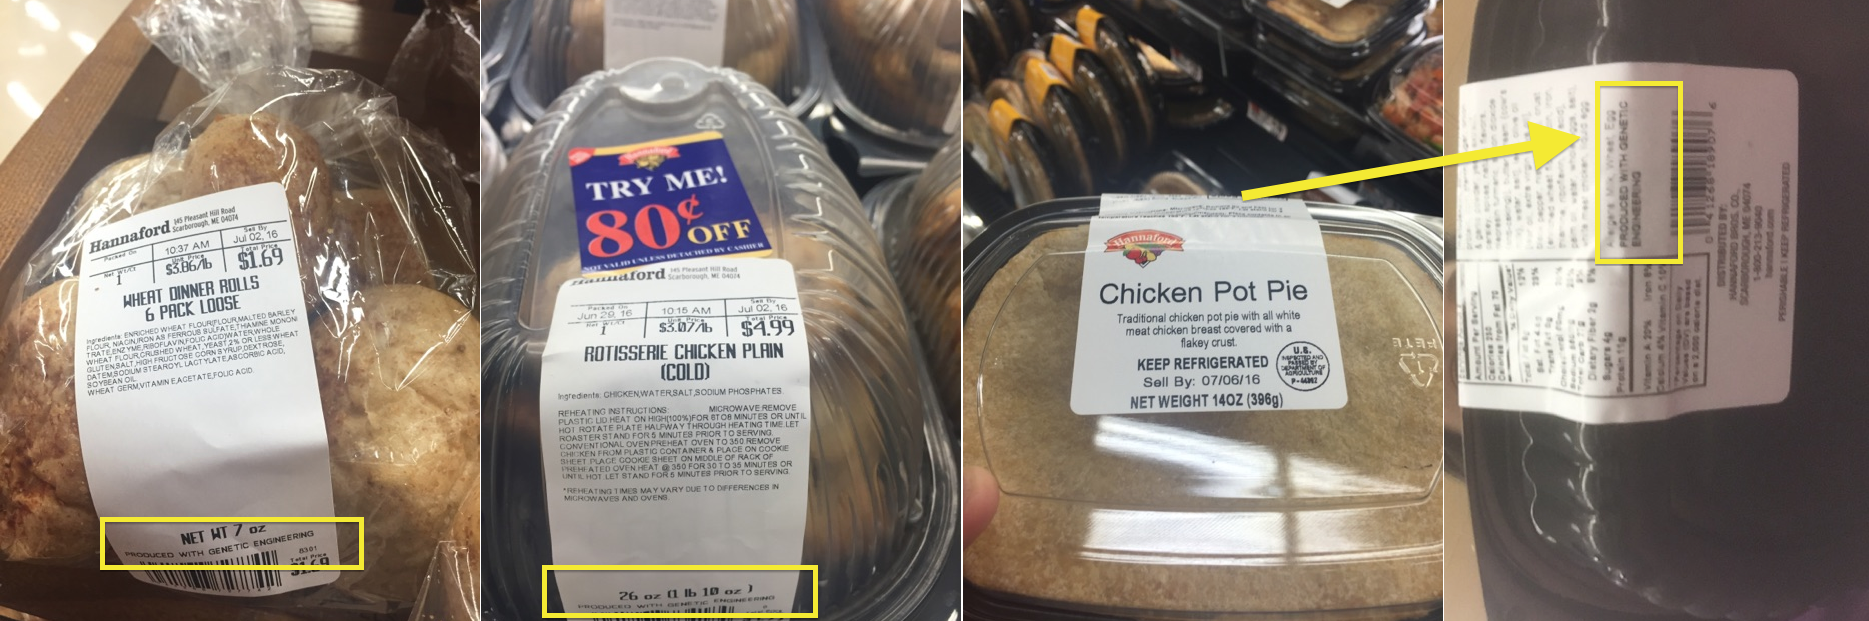 Grocery Association To Vermont Stores: Keep Labeling GMO Foods, But Only If You Want To